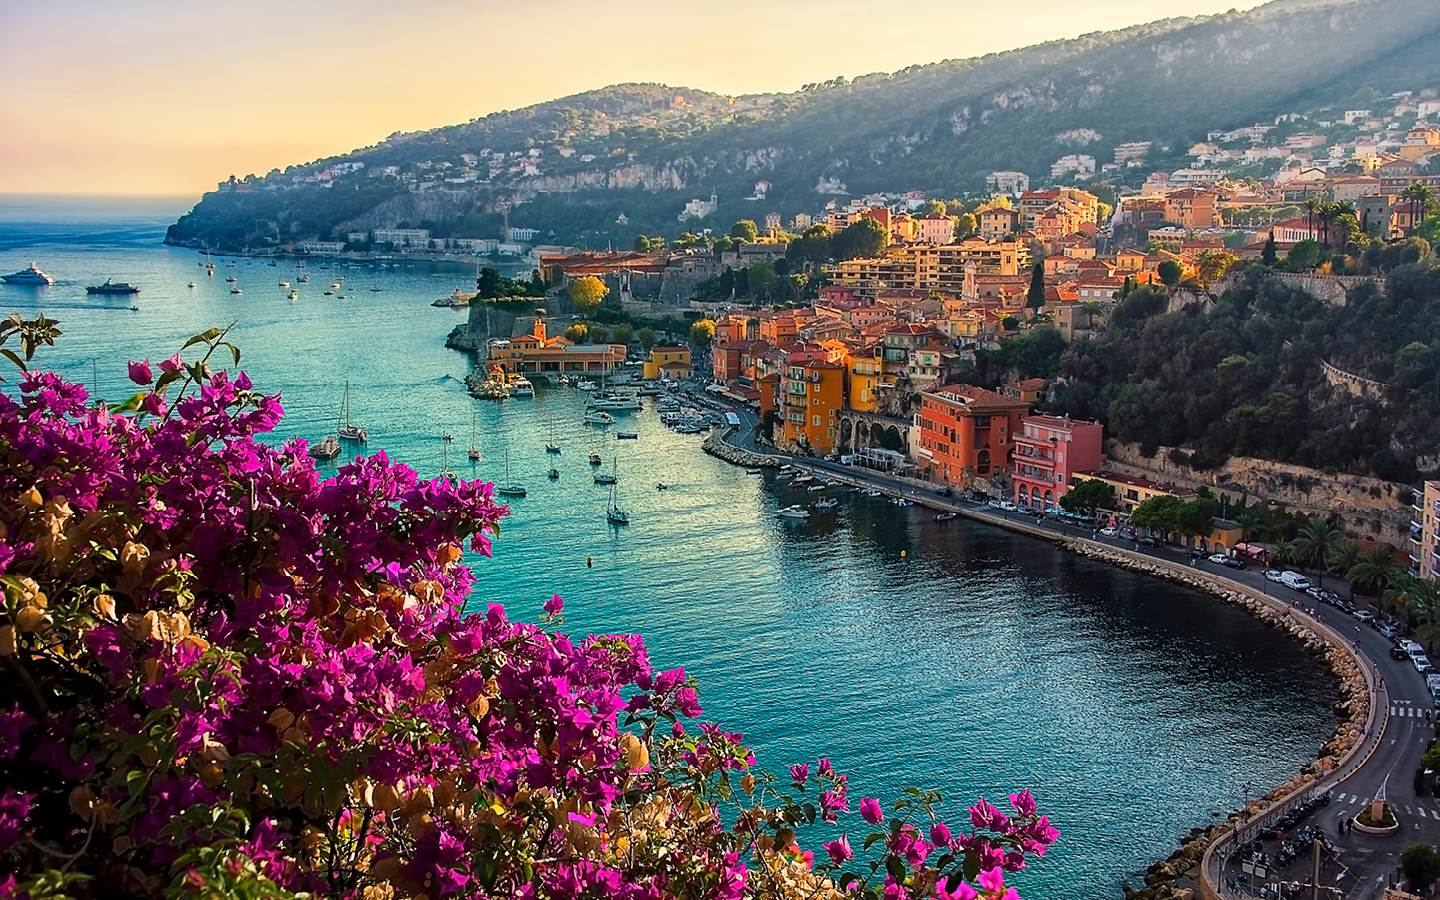 An image of a harbour in Nice, France